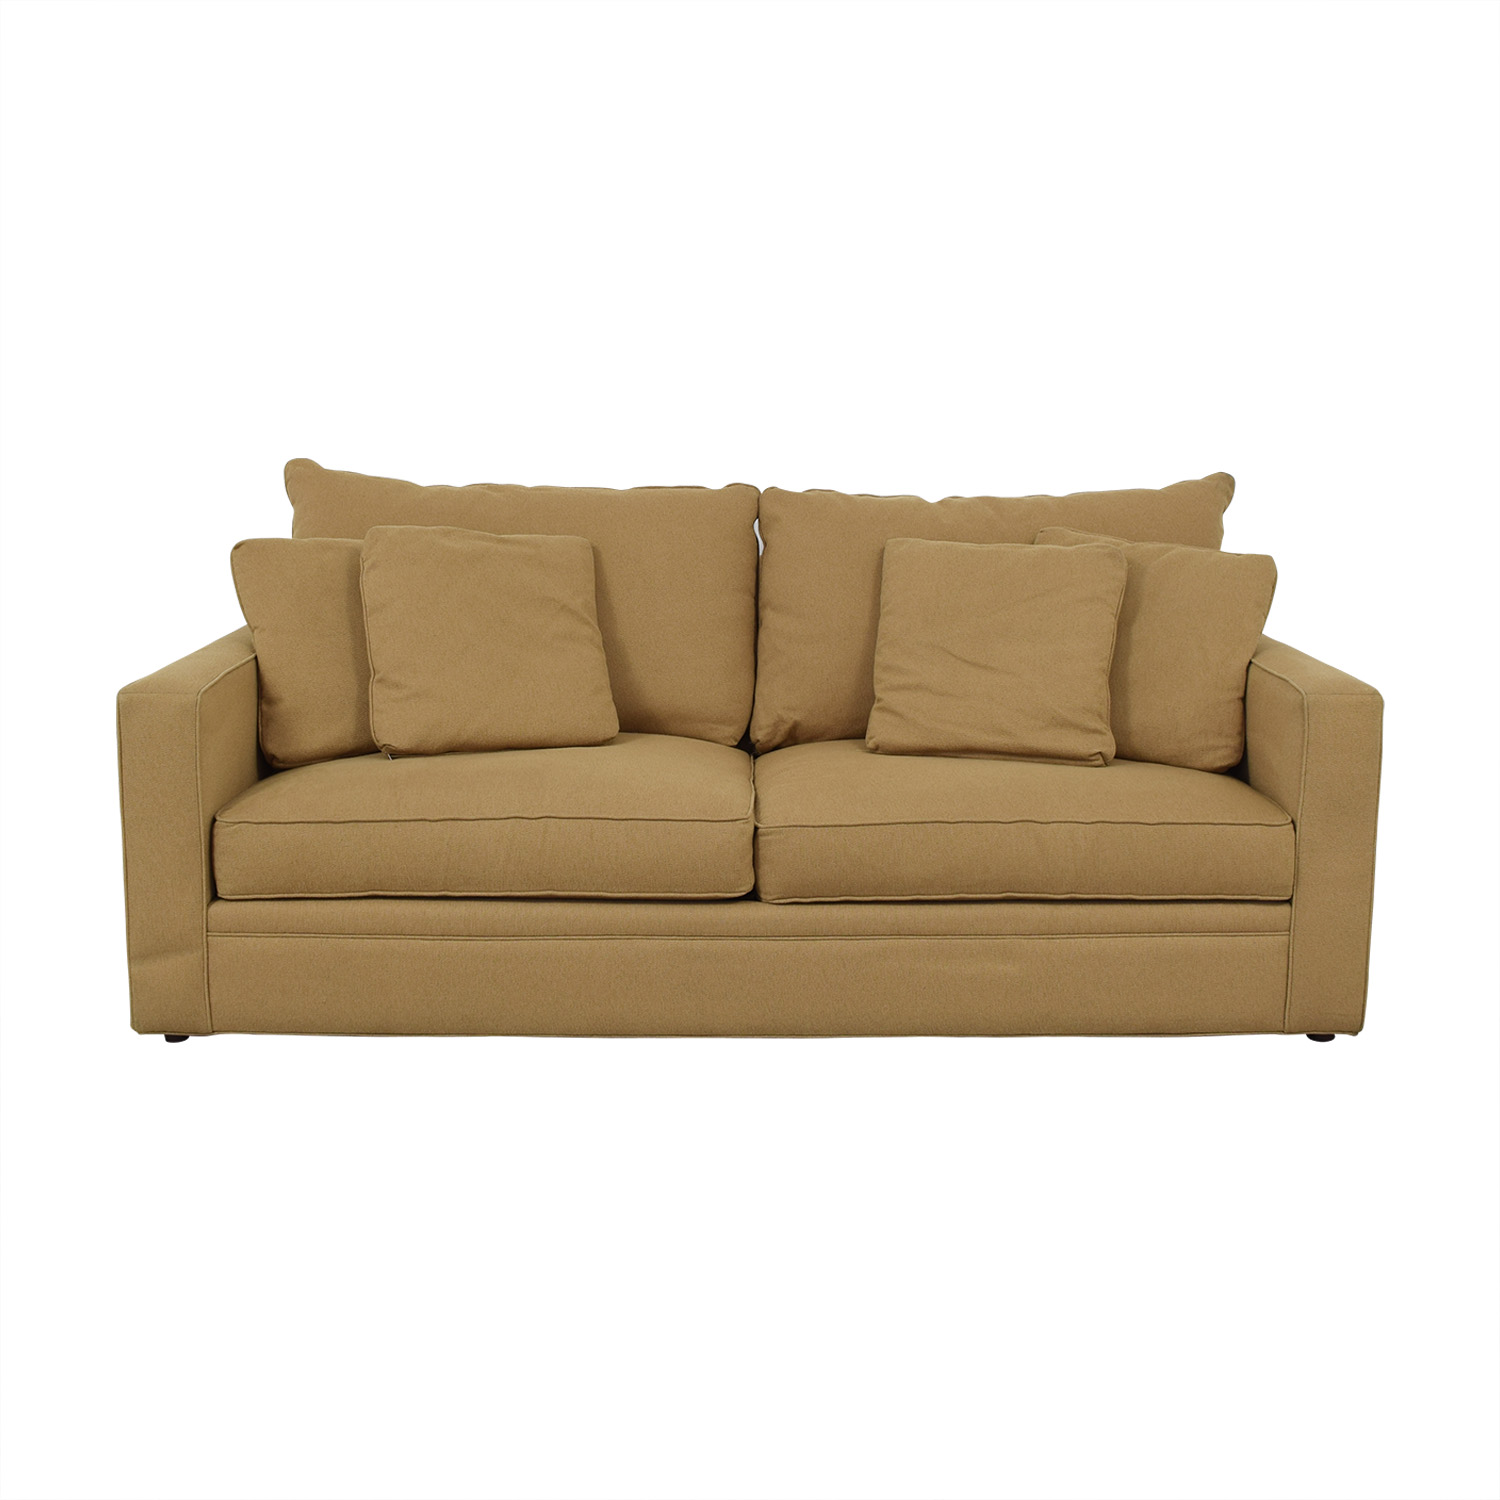 buy Room & Board Orson Custom Sofa Room & Board Sofas